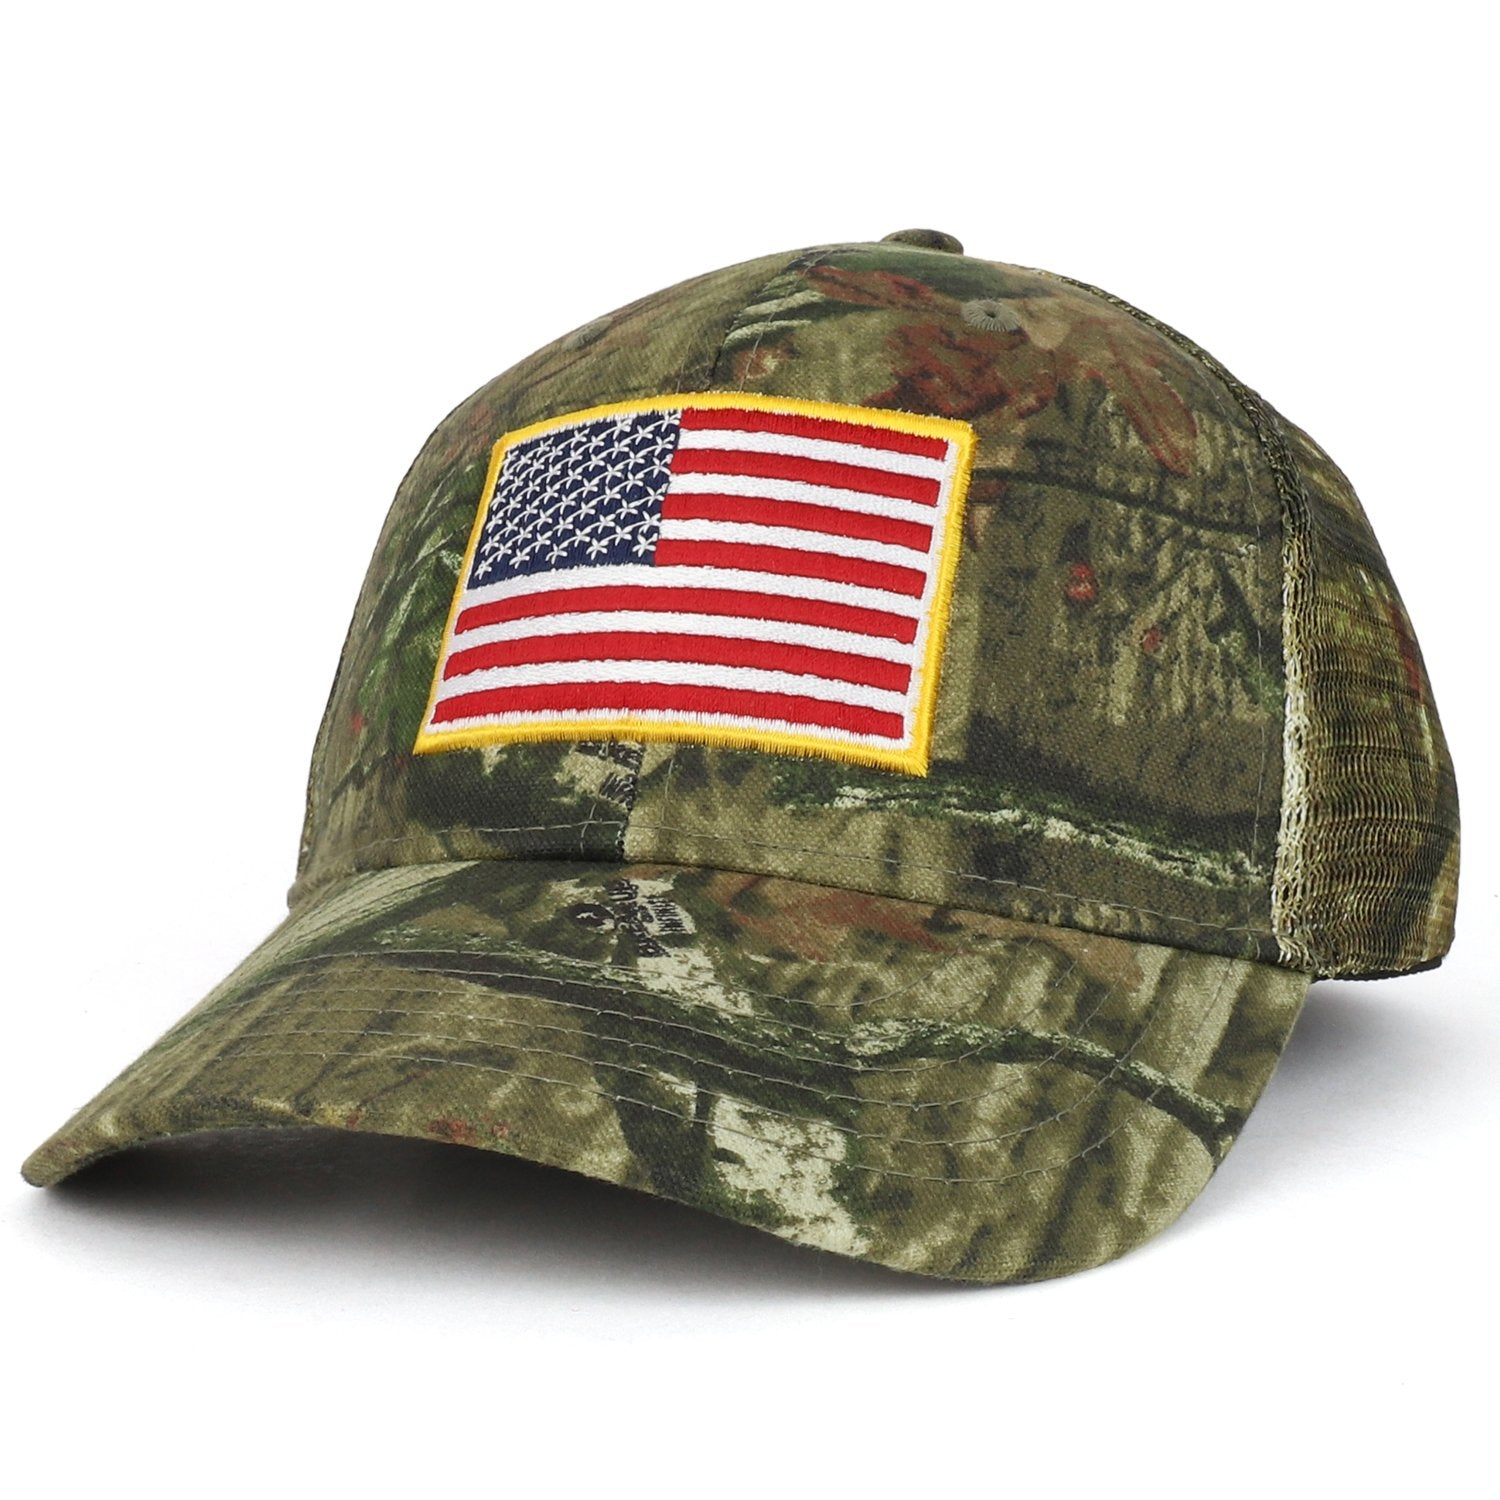 6bbd16c51c7 Armycrew USA Flag Patch Embroidered Mossy Oak Break Up Trucker Mesh Cap